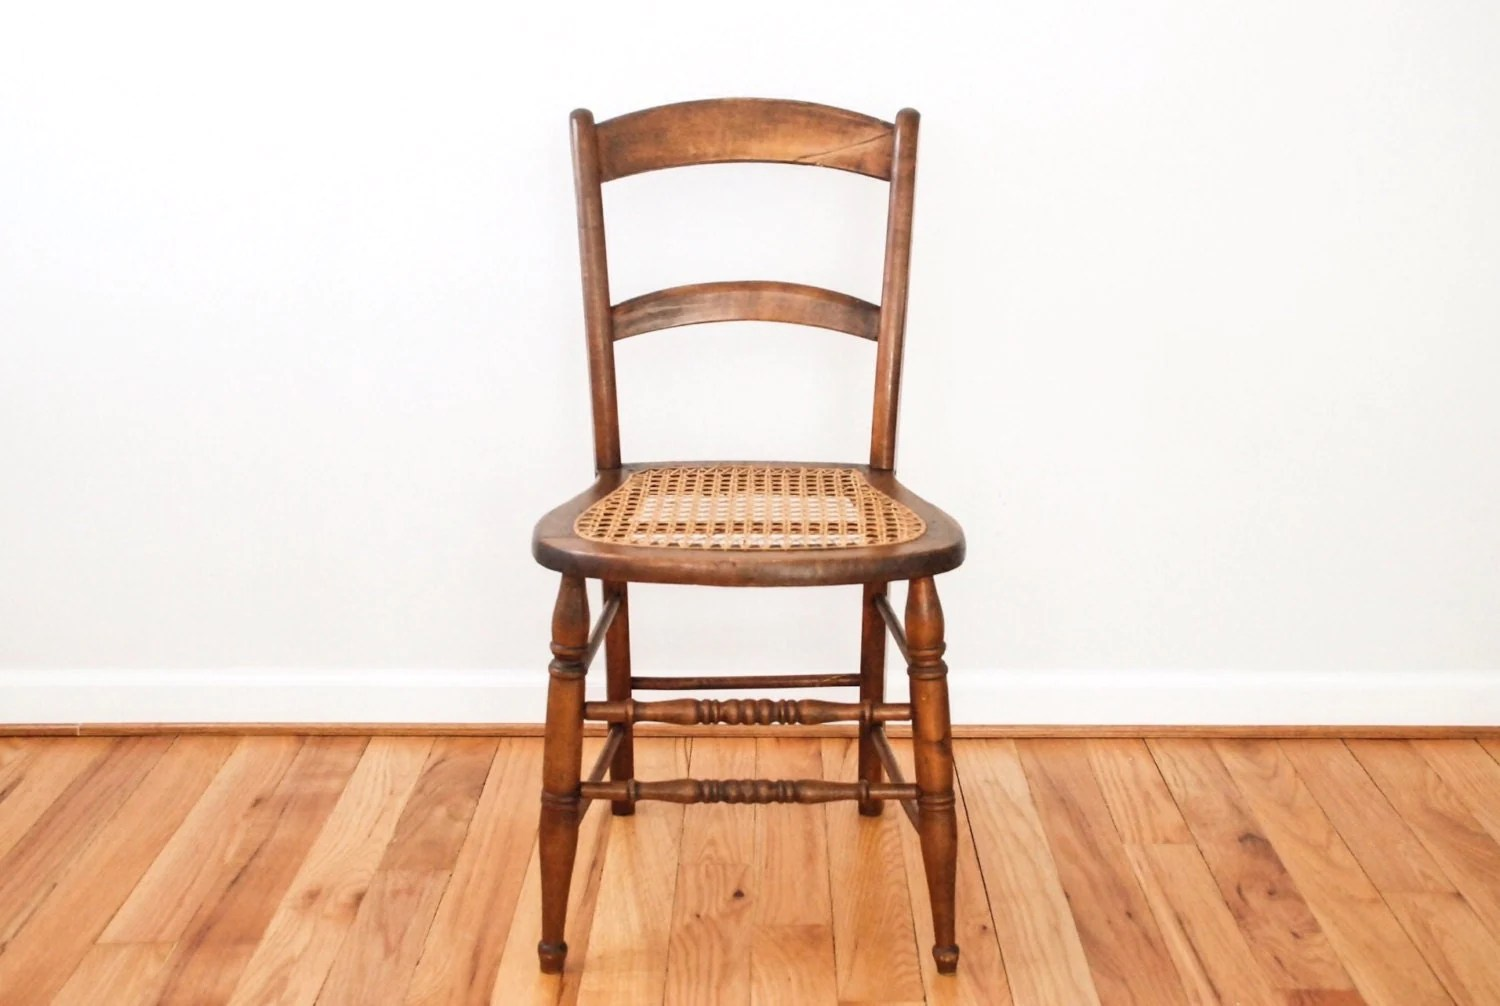 Antique Wicker Chair Antique Caned Chair Cane Chair Wood